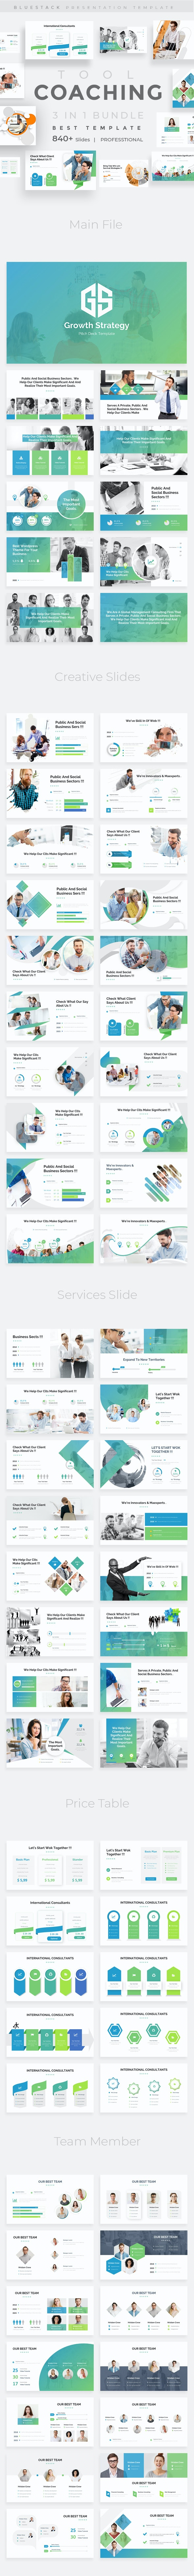 Coaching Tool 3 in 1 Pitch Deck Bundle Keynote Template - Business Keynote Templates